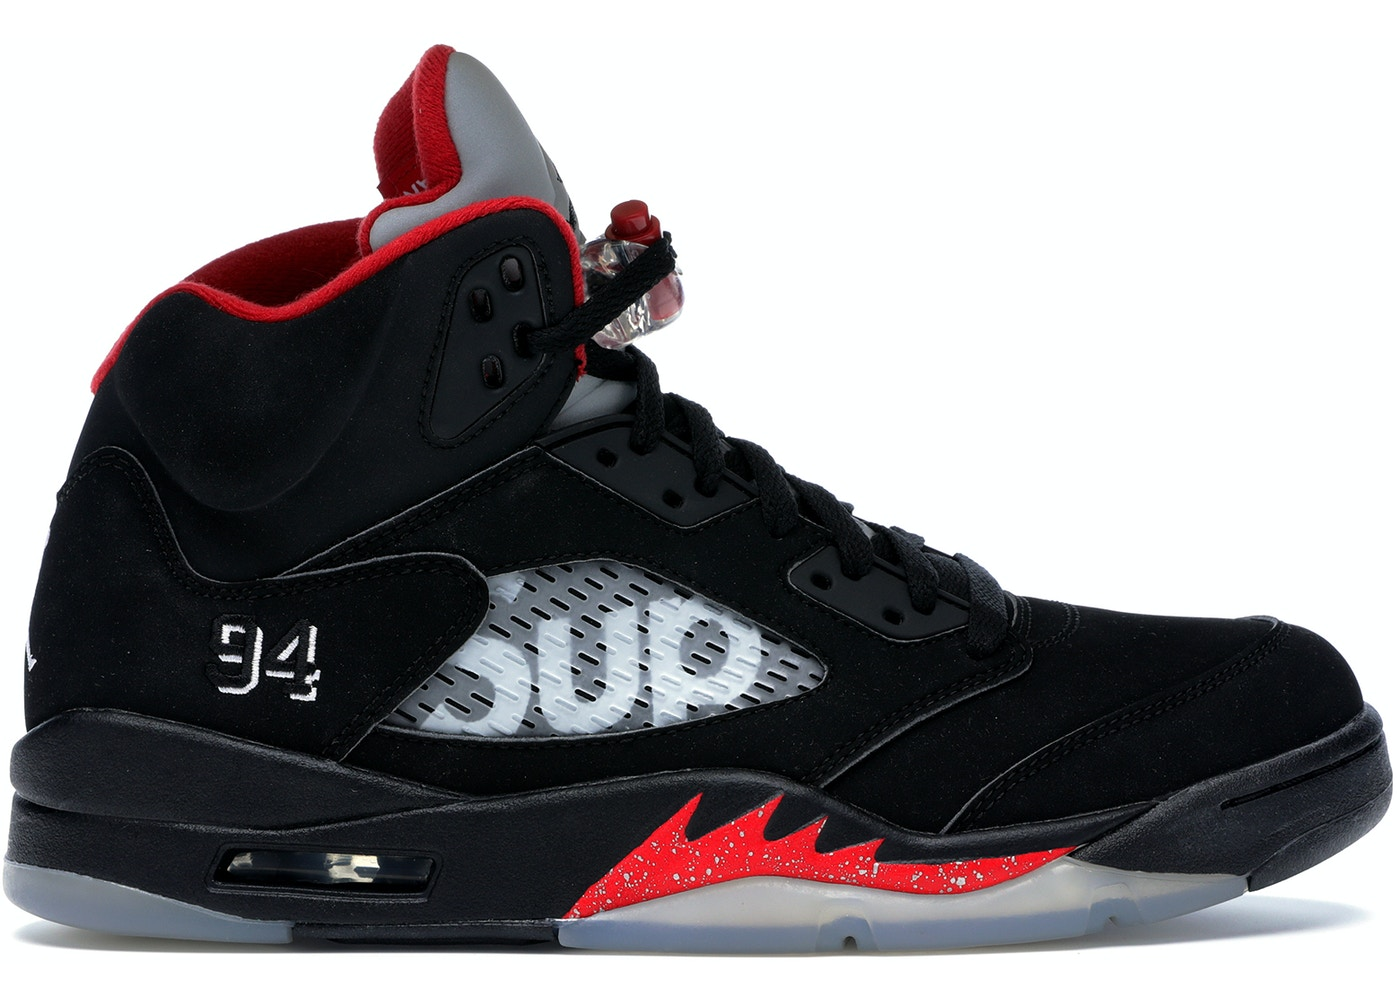 40802000 Jordan 5 Retro Supreme Black - 824371-001